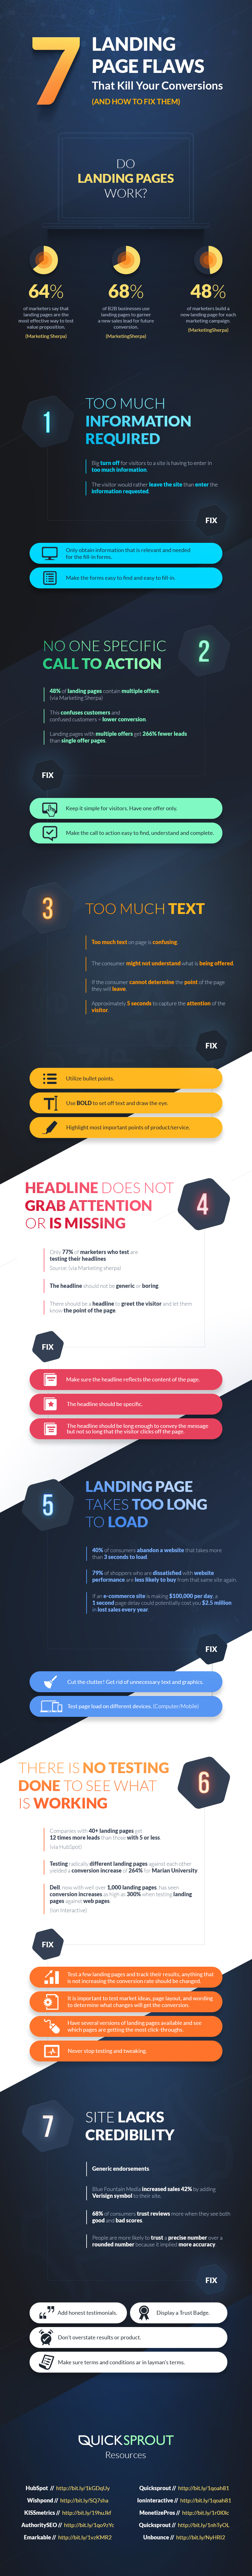 Are You Making These 7 Landing Page Mistakes?